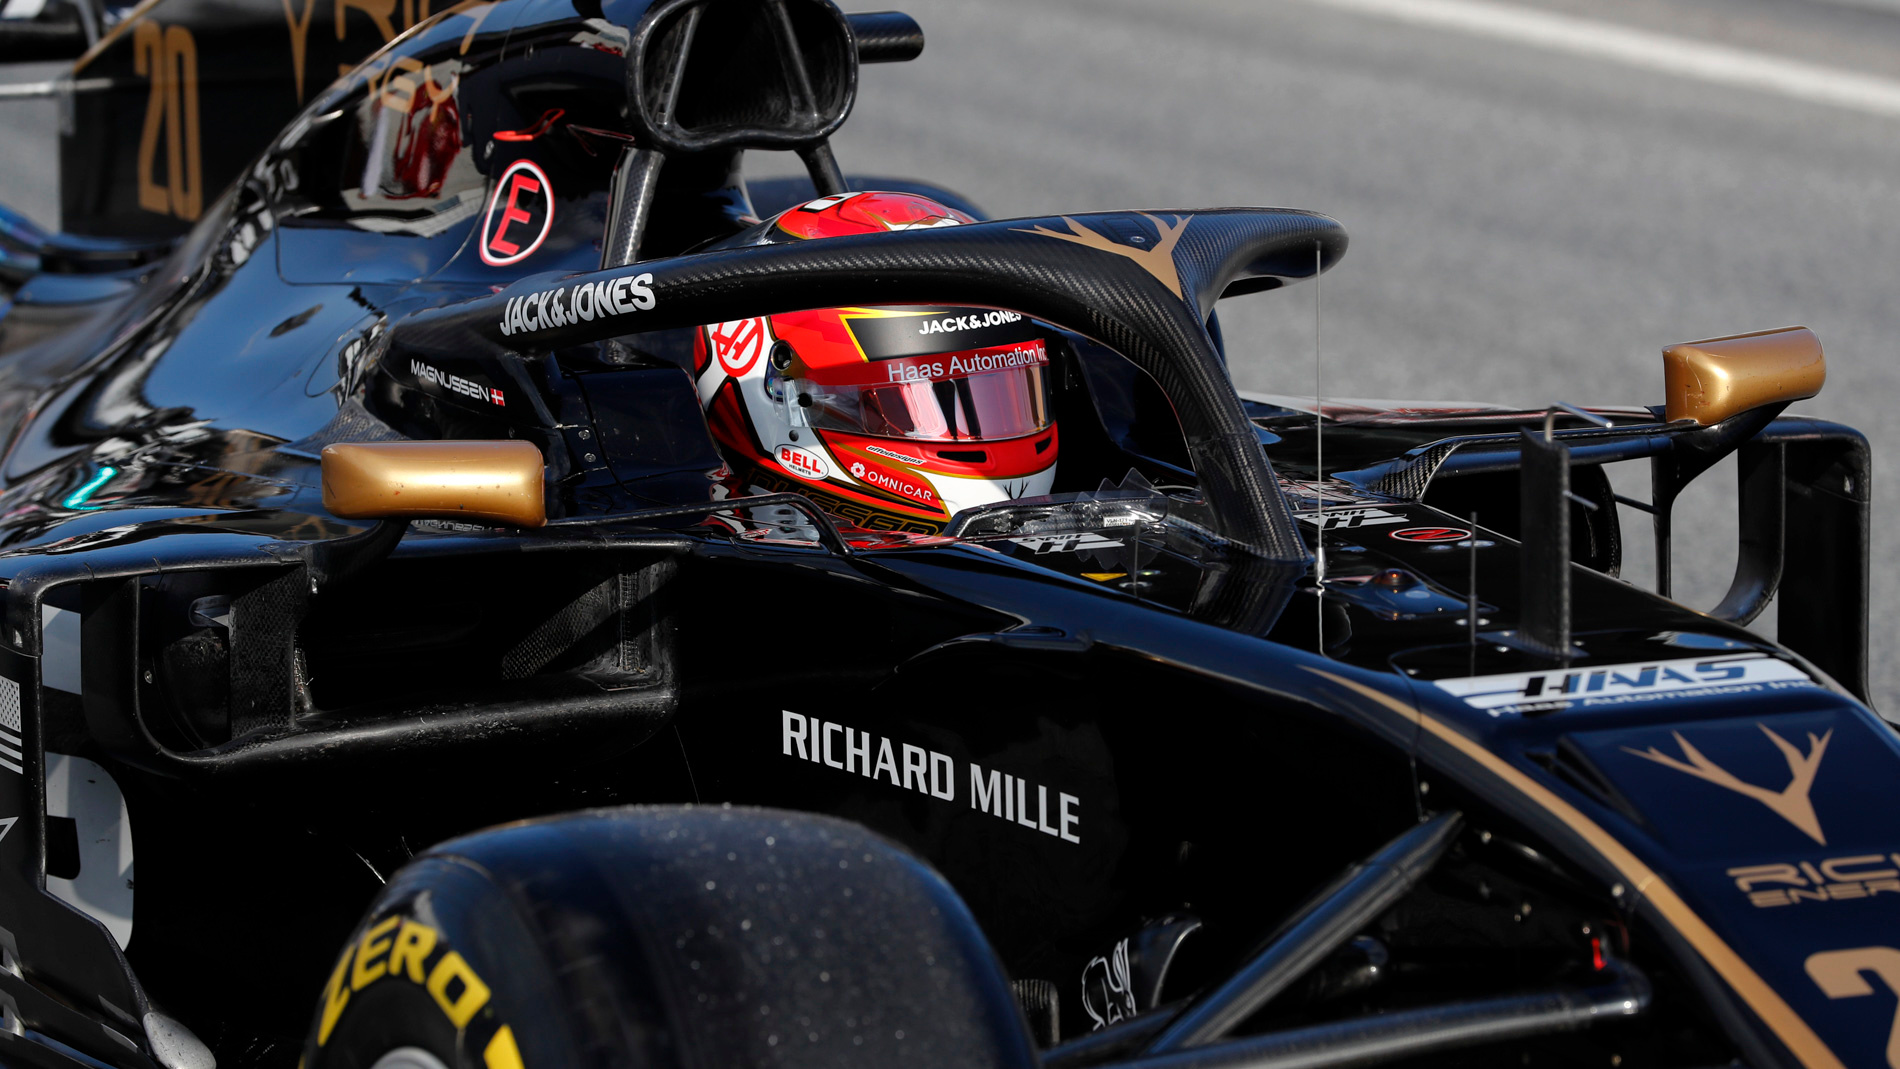 St Charles Mercedes >> F1 pre-season testing: Magnussen left 'struggling to see' after Haas headrest issue | Formula 1®